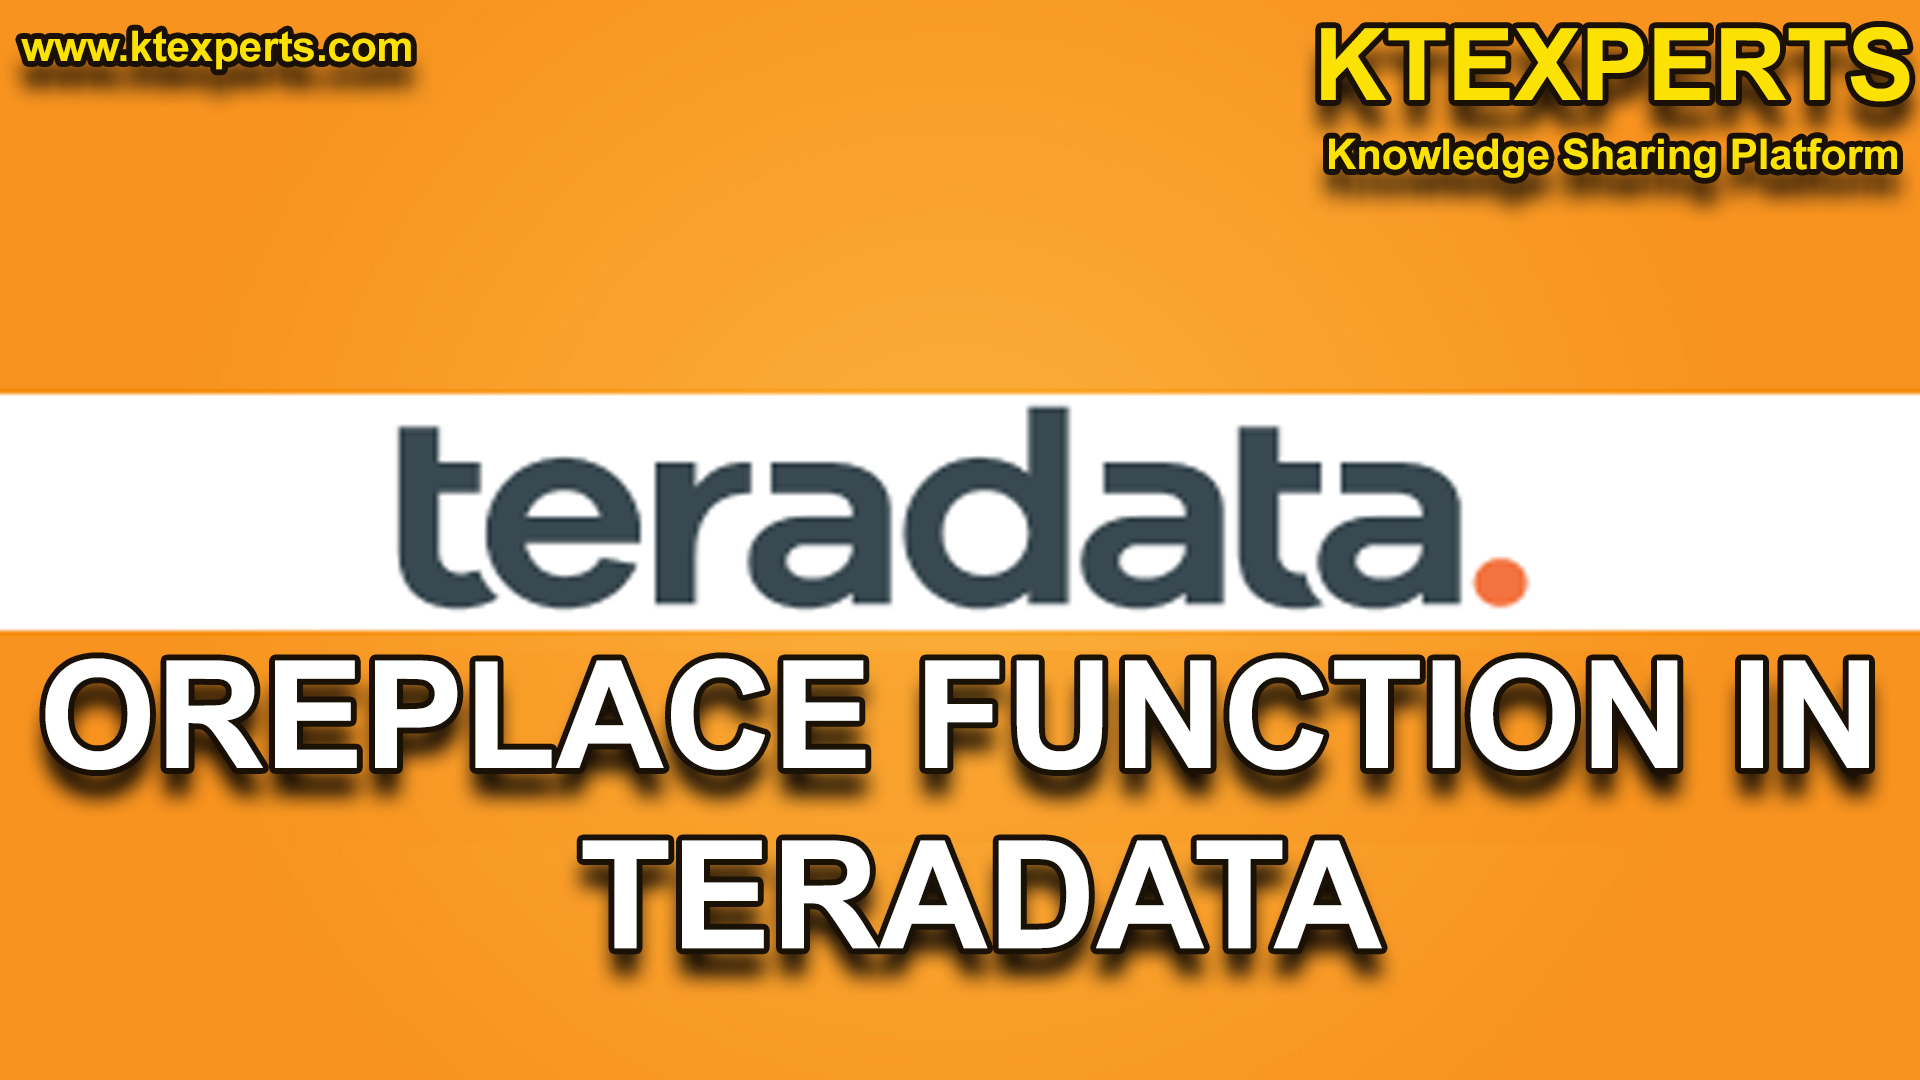 OREPLACE FUNCTION IN TERADATA